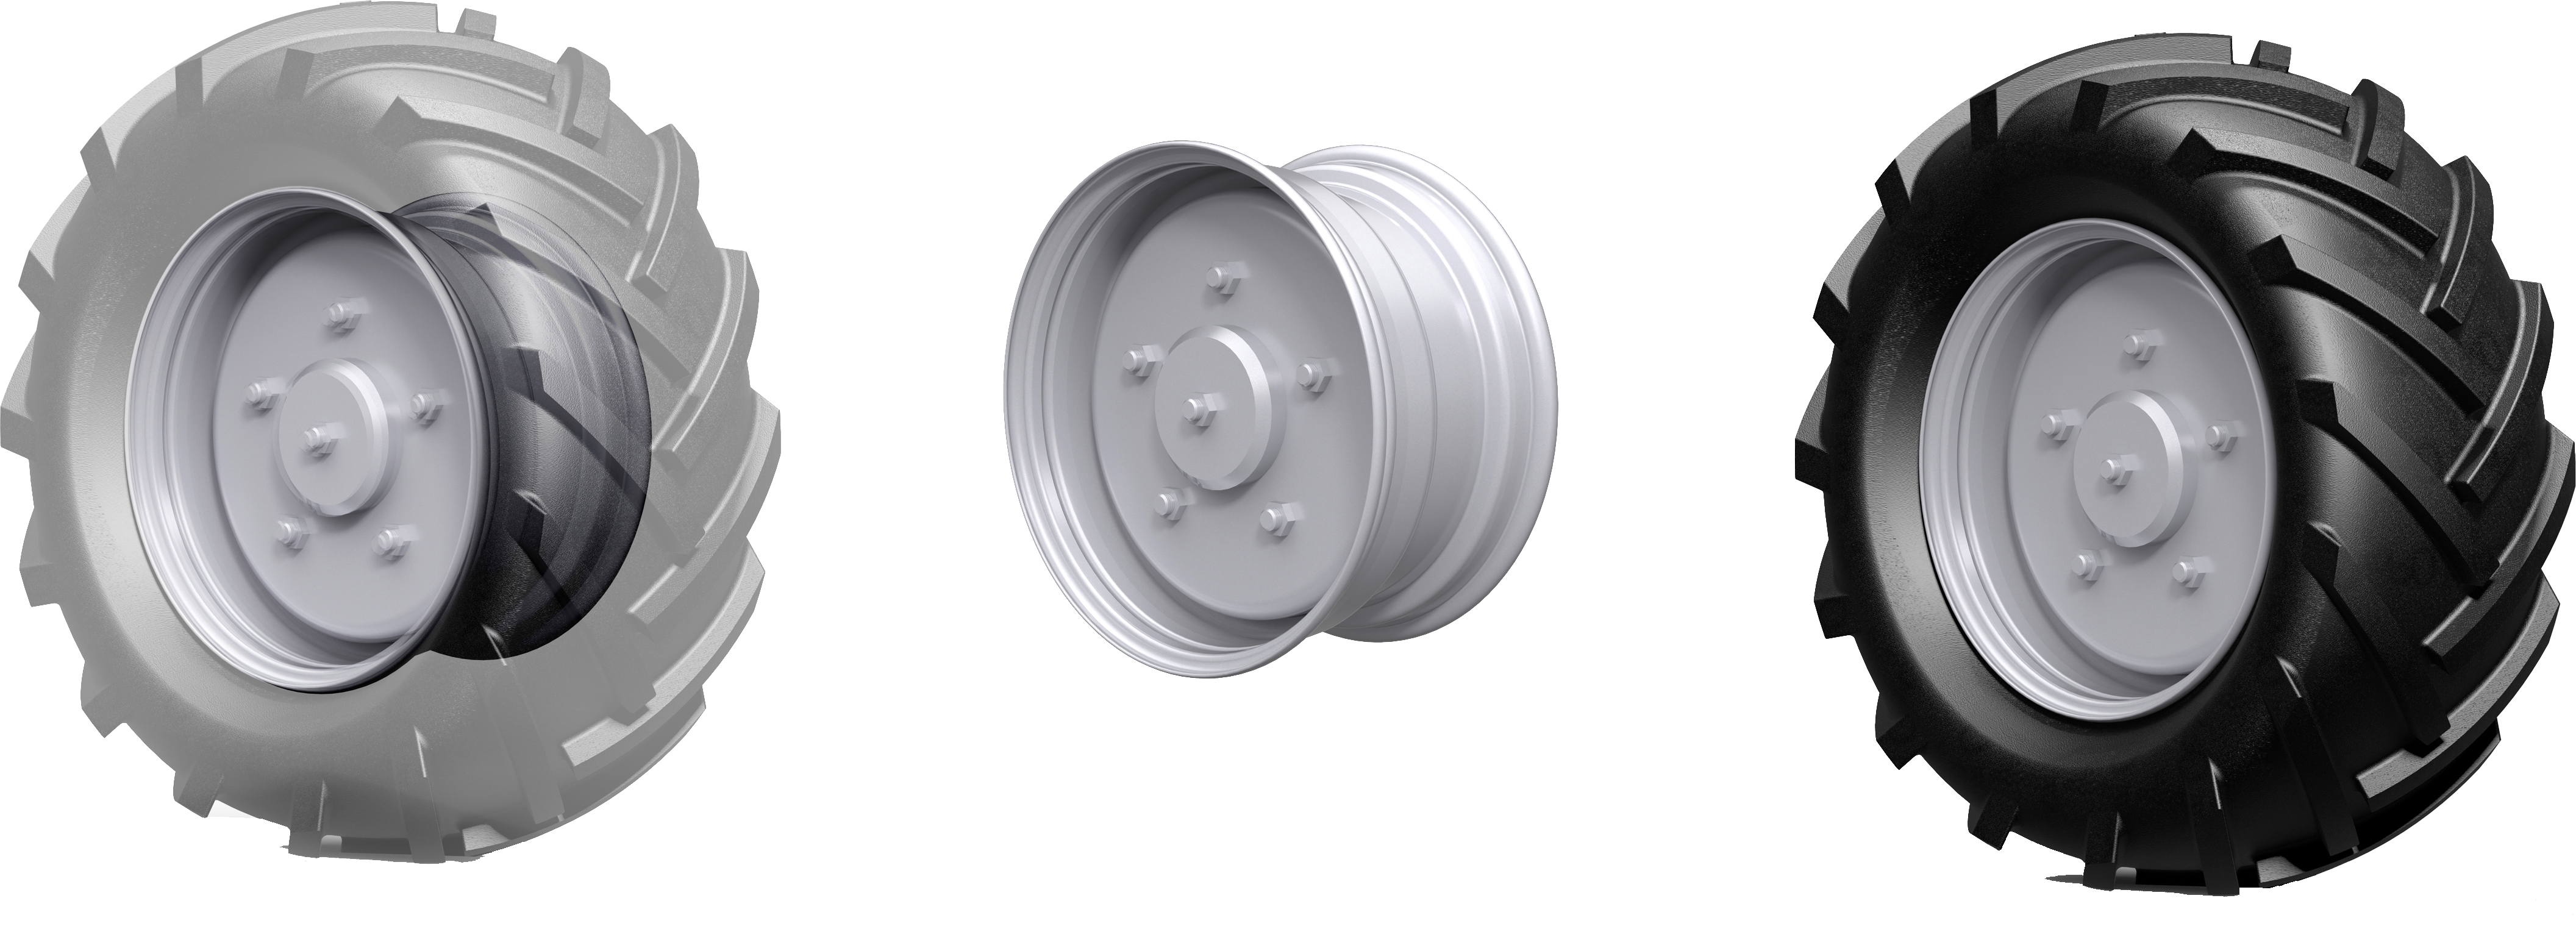 wsd inc tire and wheel assembly